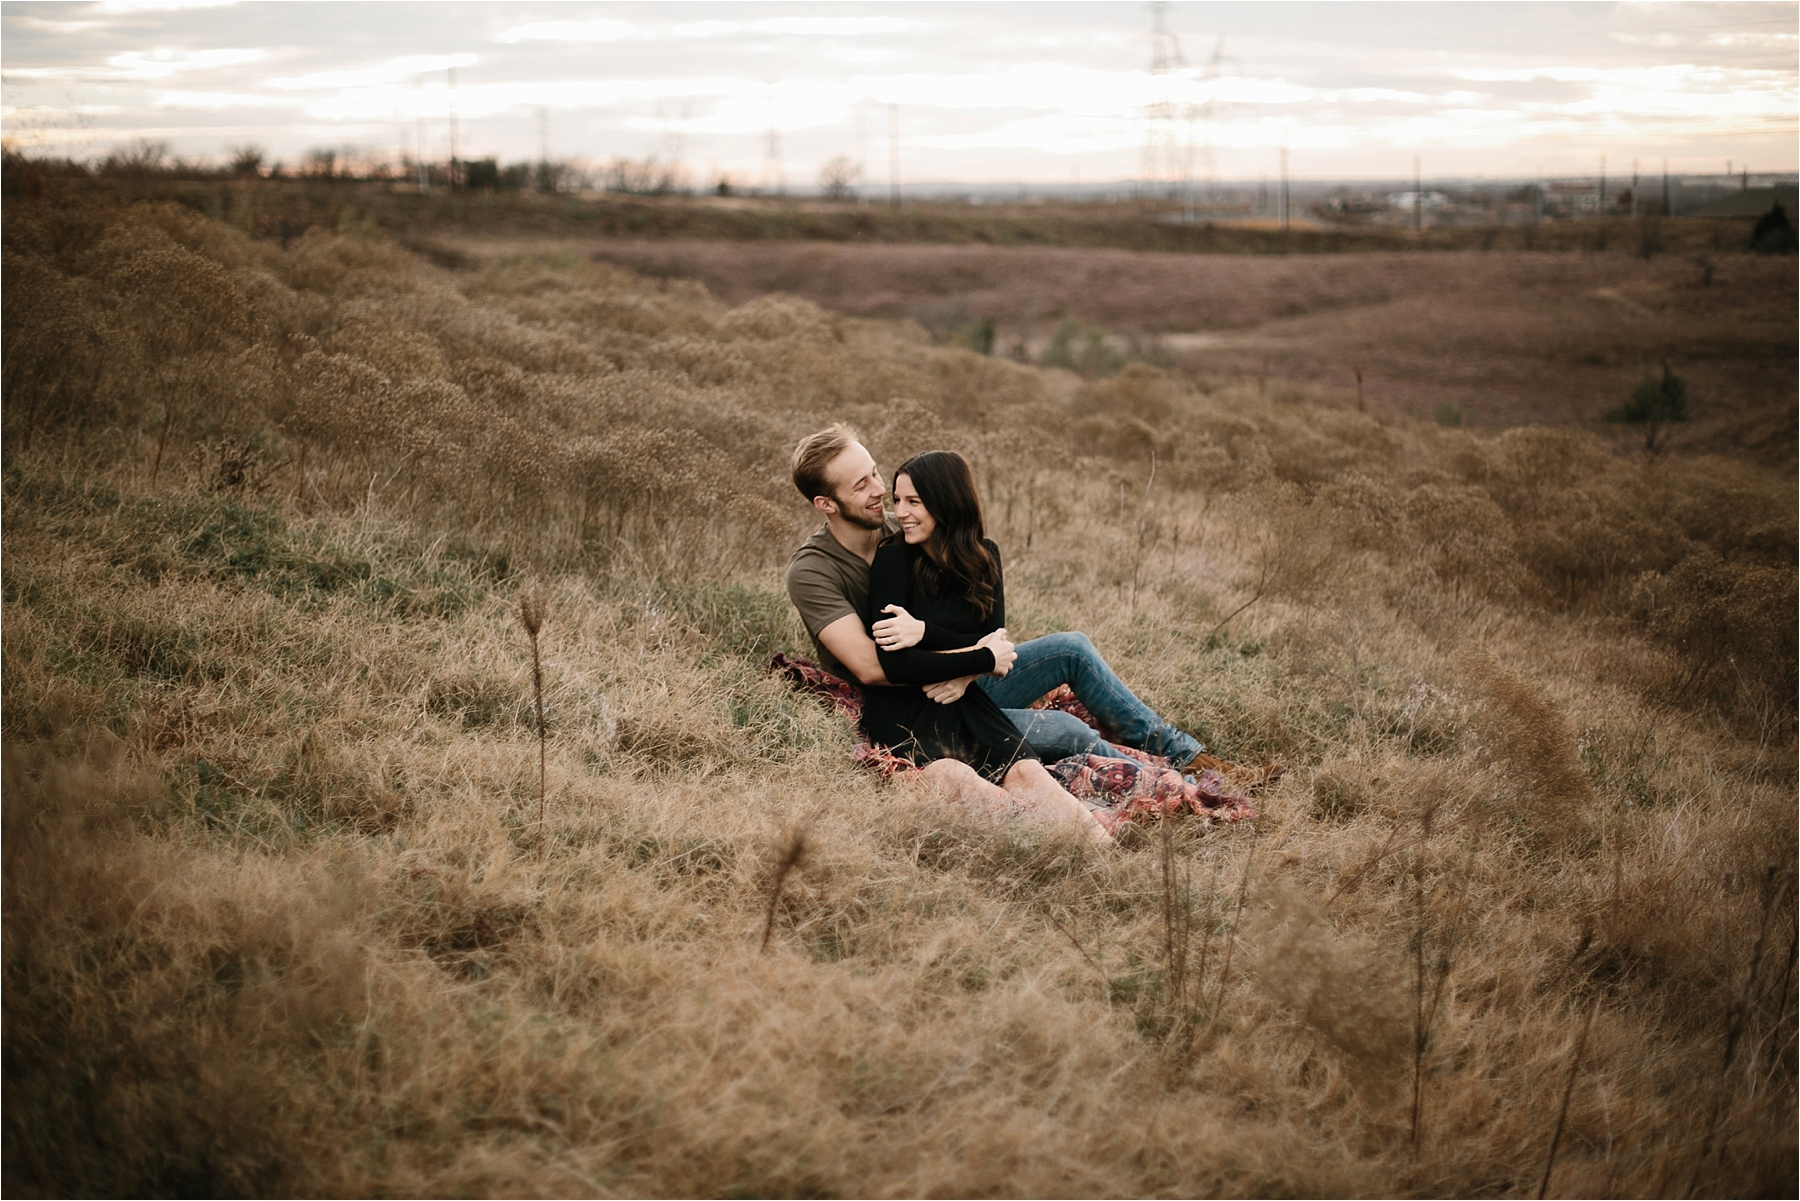 Trey + Phoebe __ a playful, intimate engagement session with dark_neutral outfit inspiration by North Texas Wedding Photographer Rachel Meagan Photography __ 06